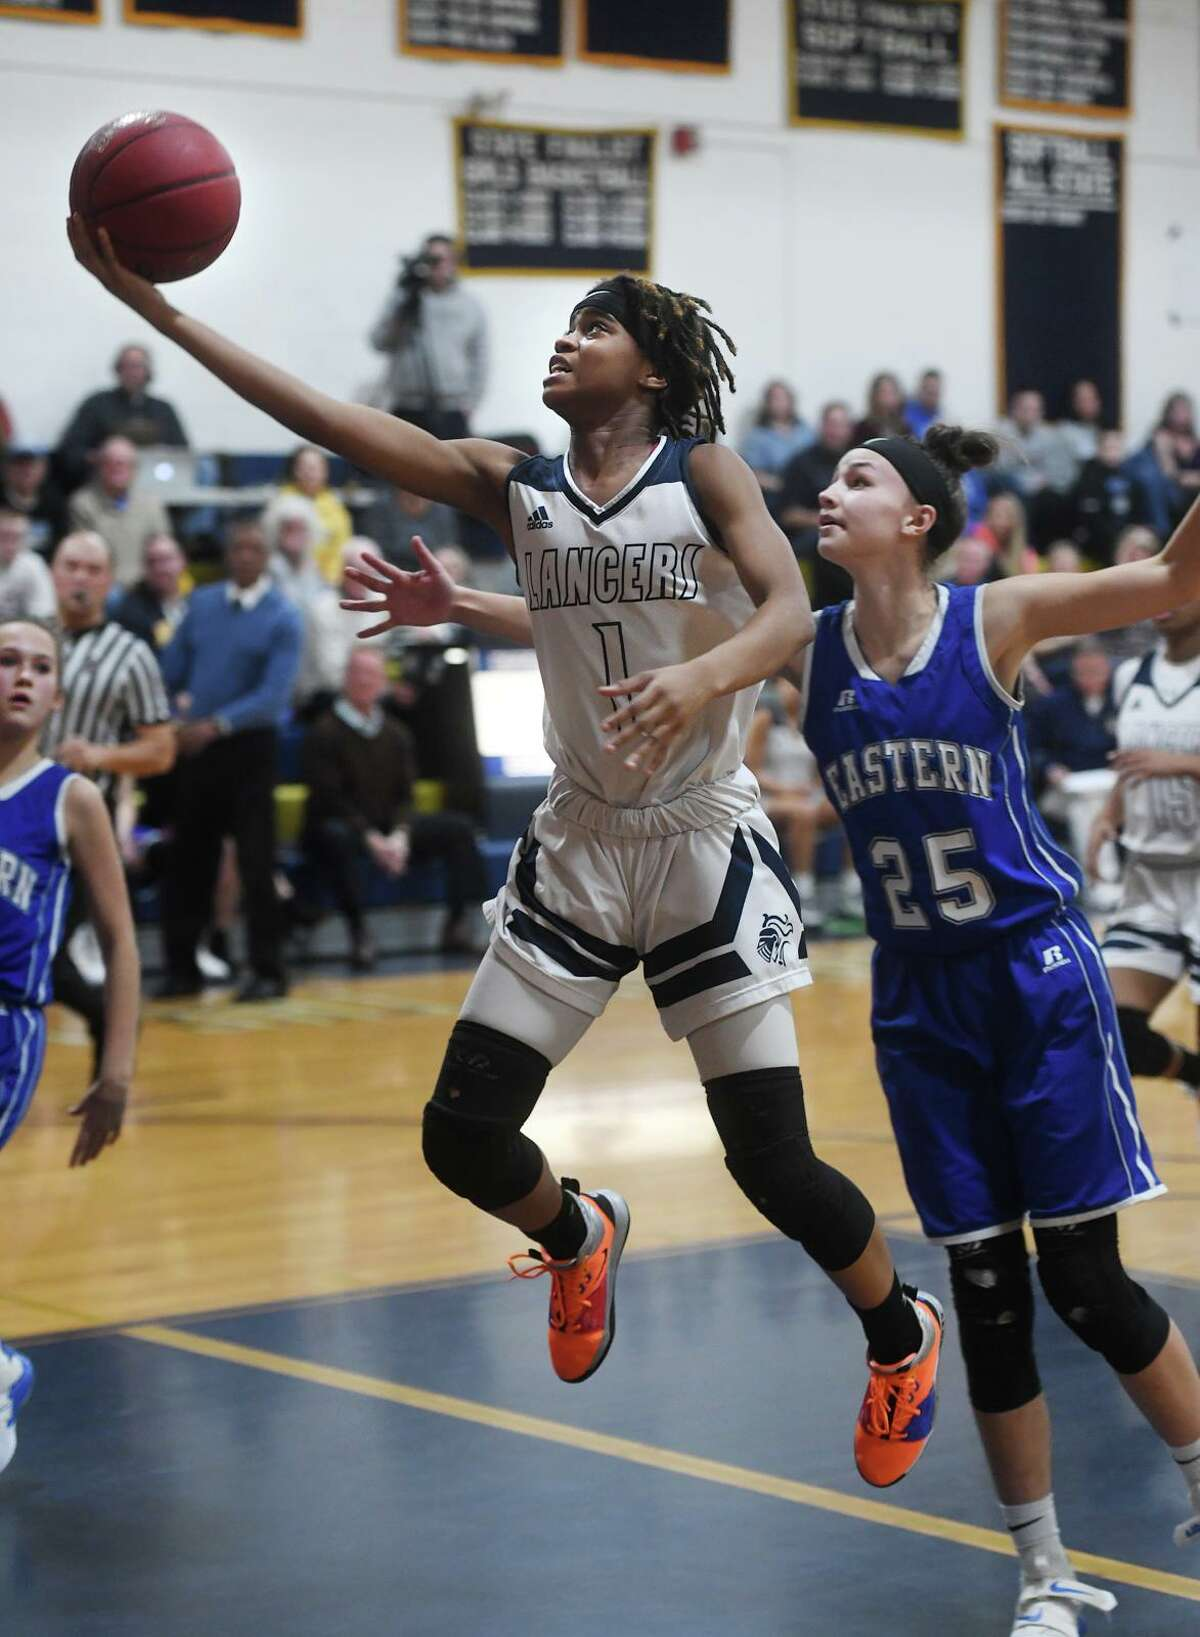 Notre Dame of Fairfield's Yamani McCollough soars to the basket ahead of Bristol Eastern defender Sage Scarritt in the first half of their CIAC Class L girls basketball quarterfinal game at Notre Dame High School in Fairfield, Conn. on Monday, March 4, 2019.